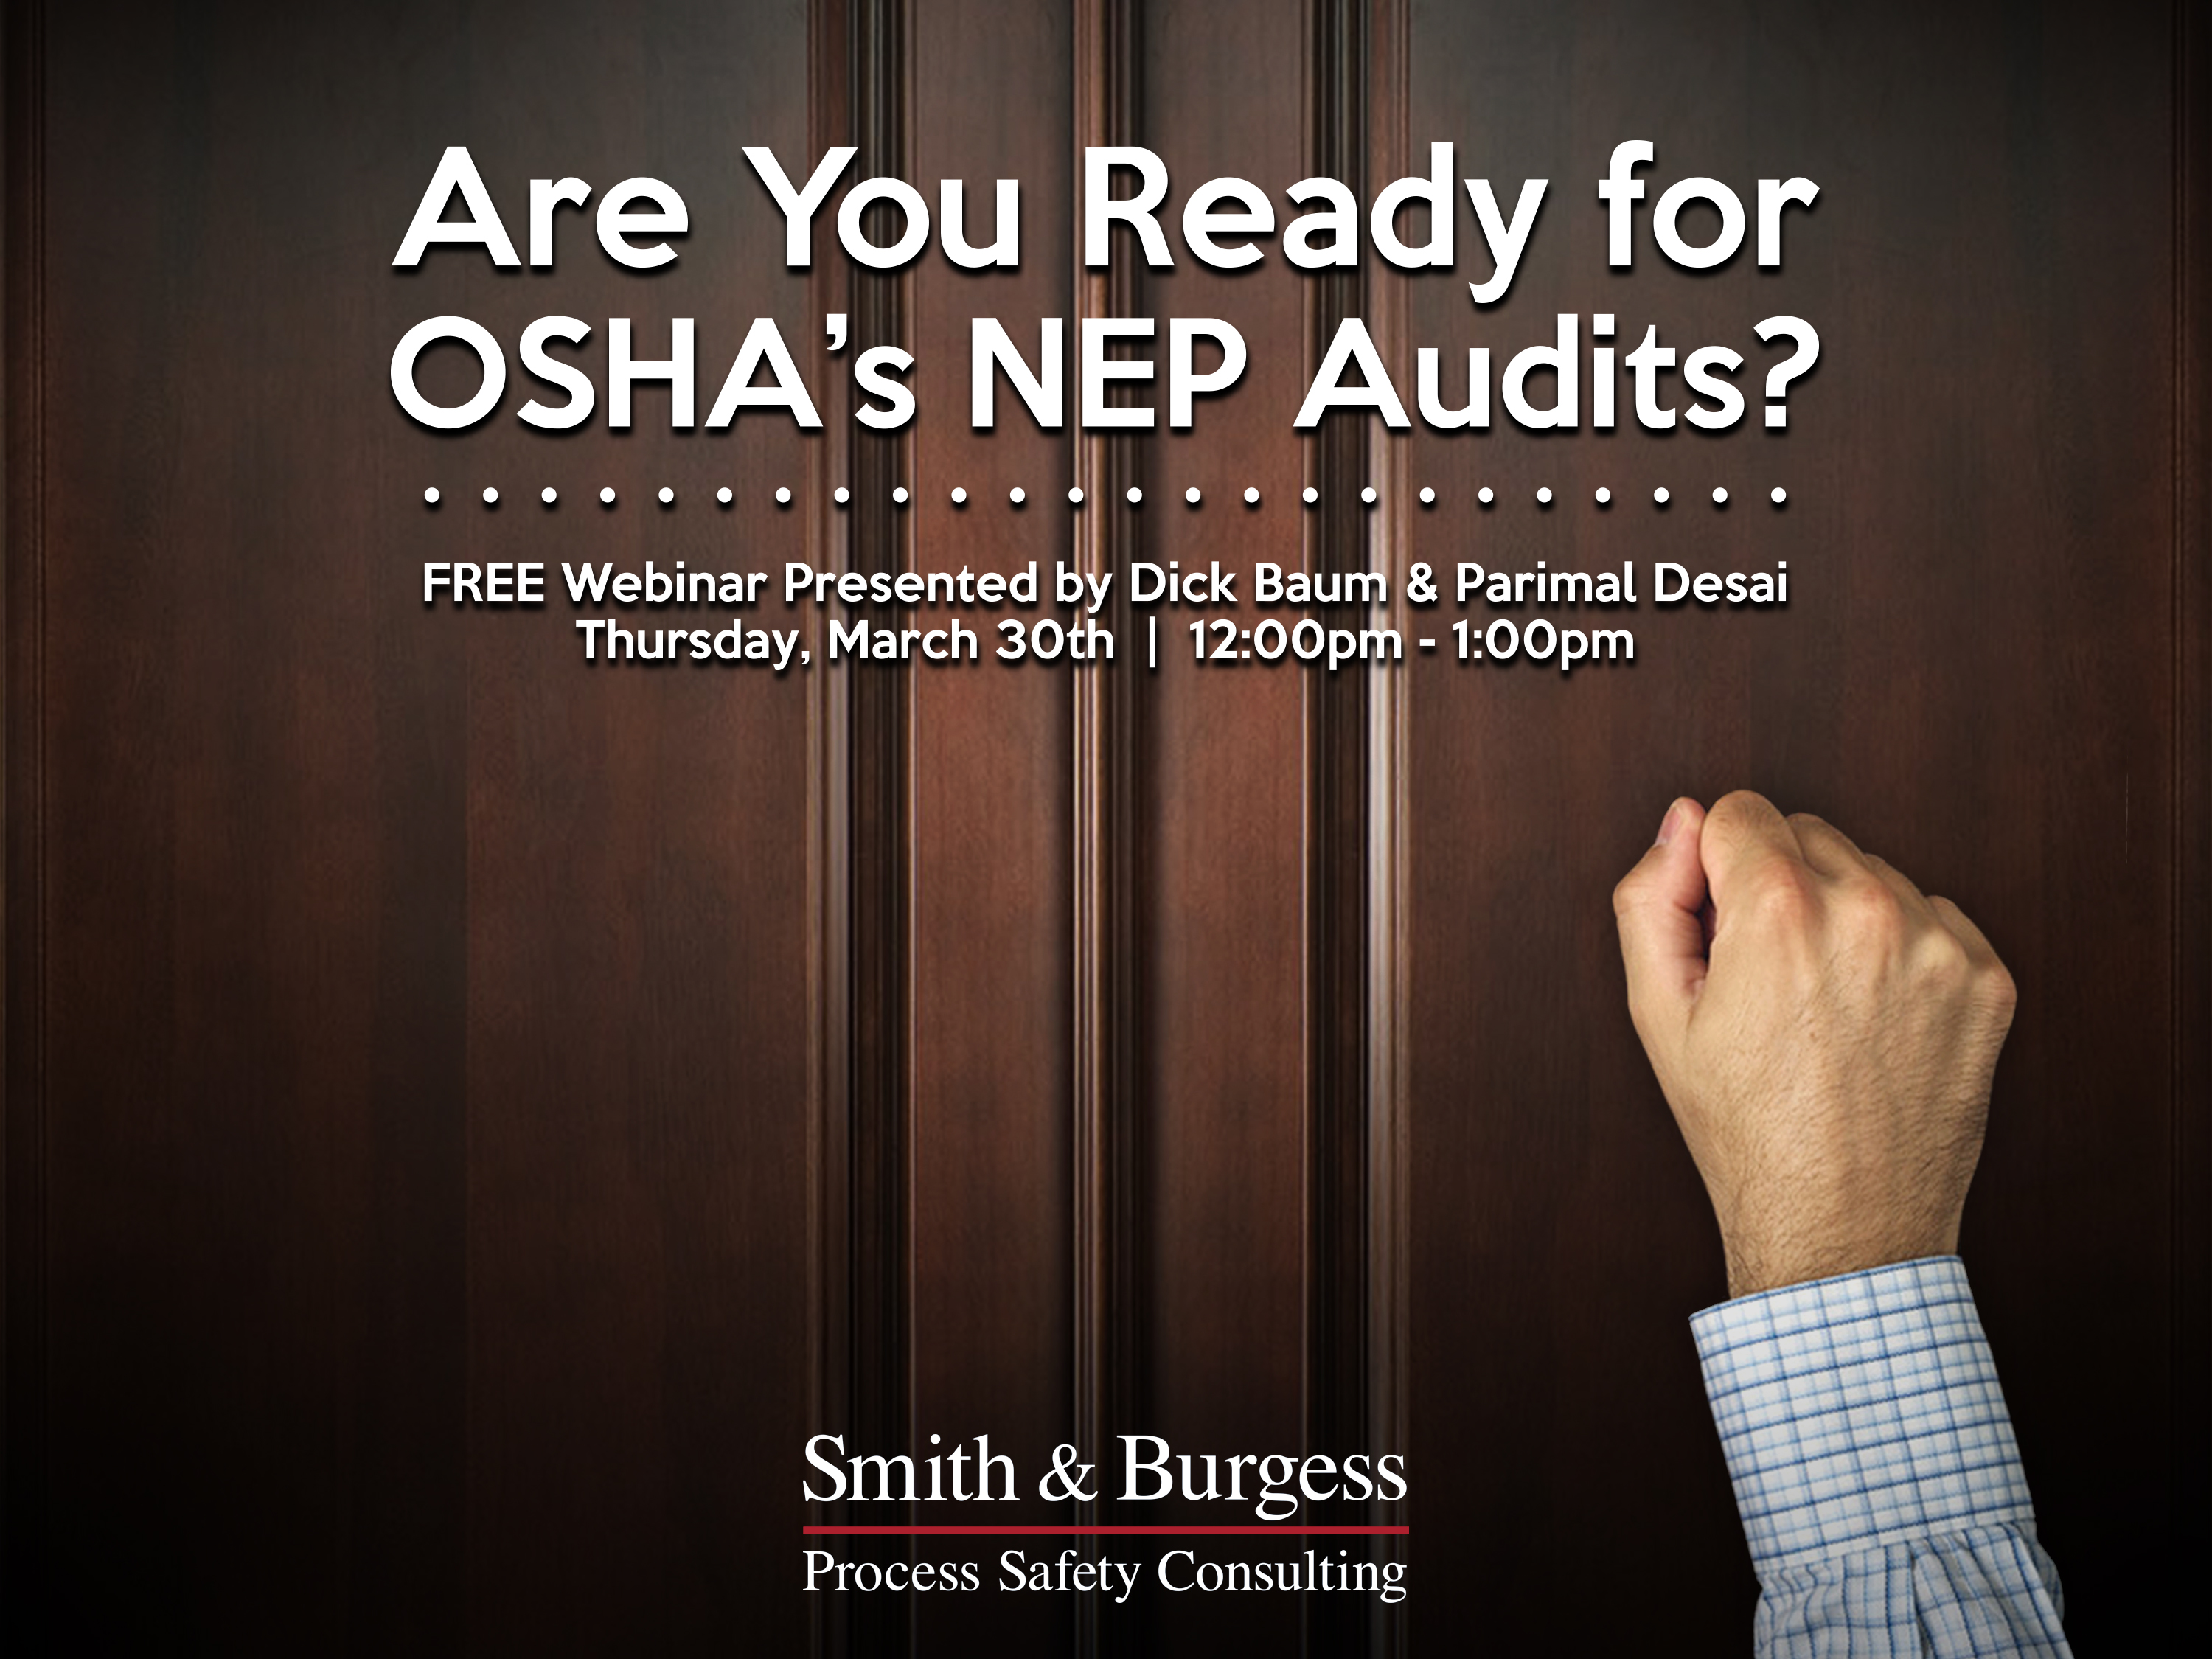 Are You Ready for OSHA's NEP Audits?